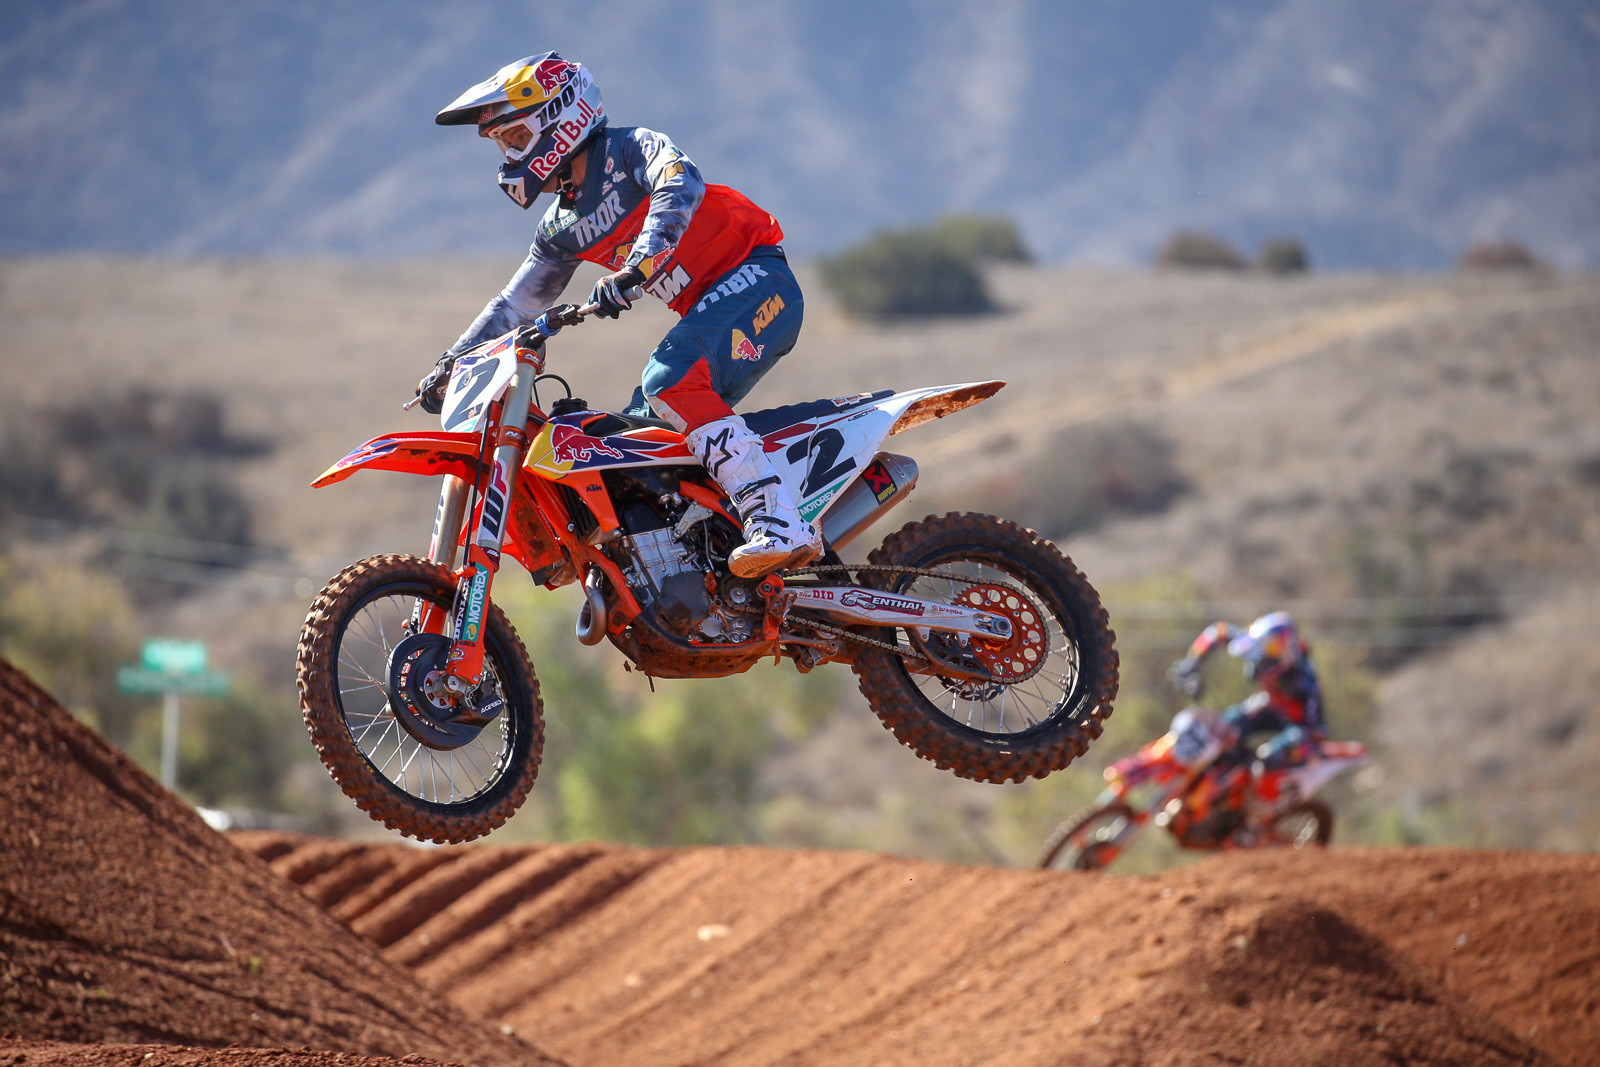 Cooper Webb and Marvin Musquin have had their share of battles before they were teammates, but everyone involved with the team seems confident that they'll have a good working and training relationship at Baker's Factory.